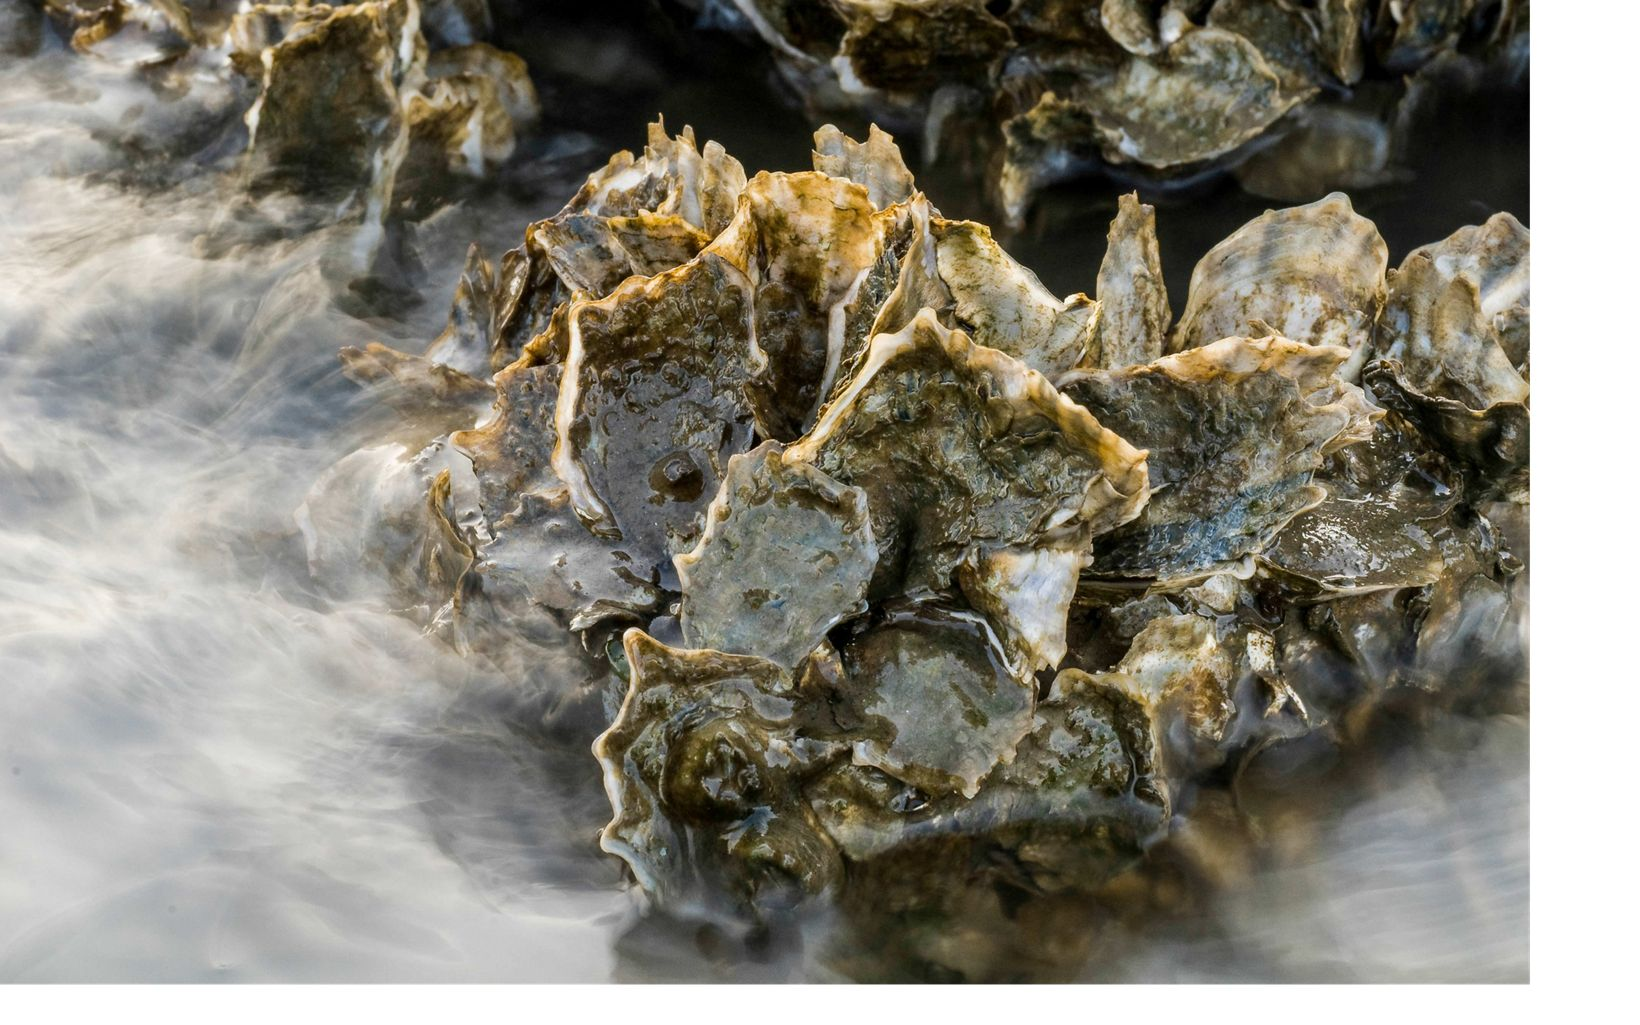 Closeup of oysters